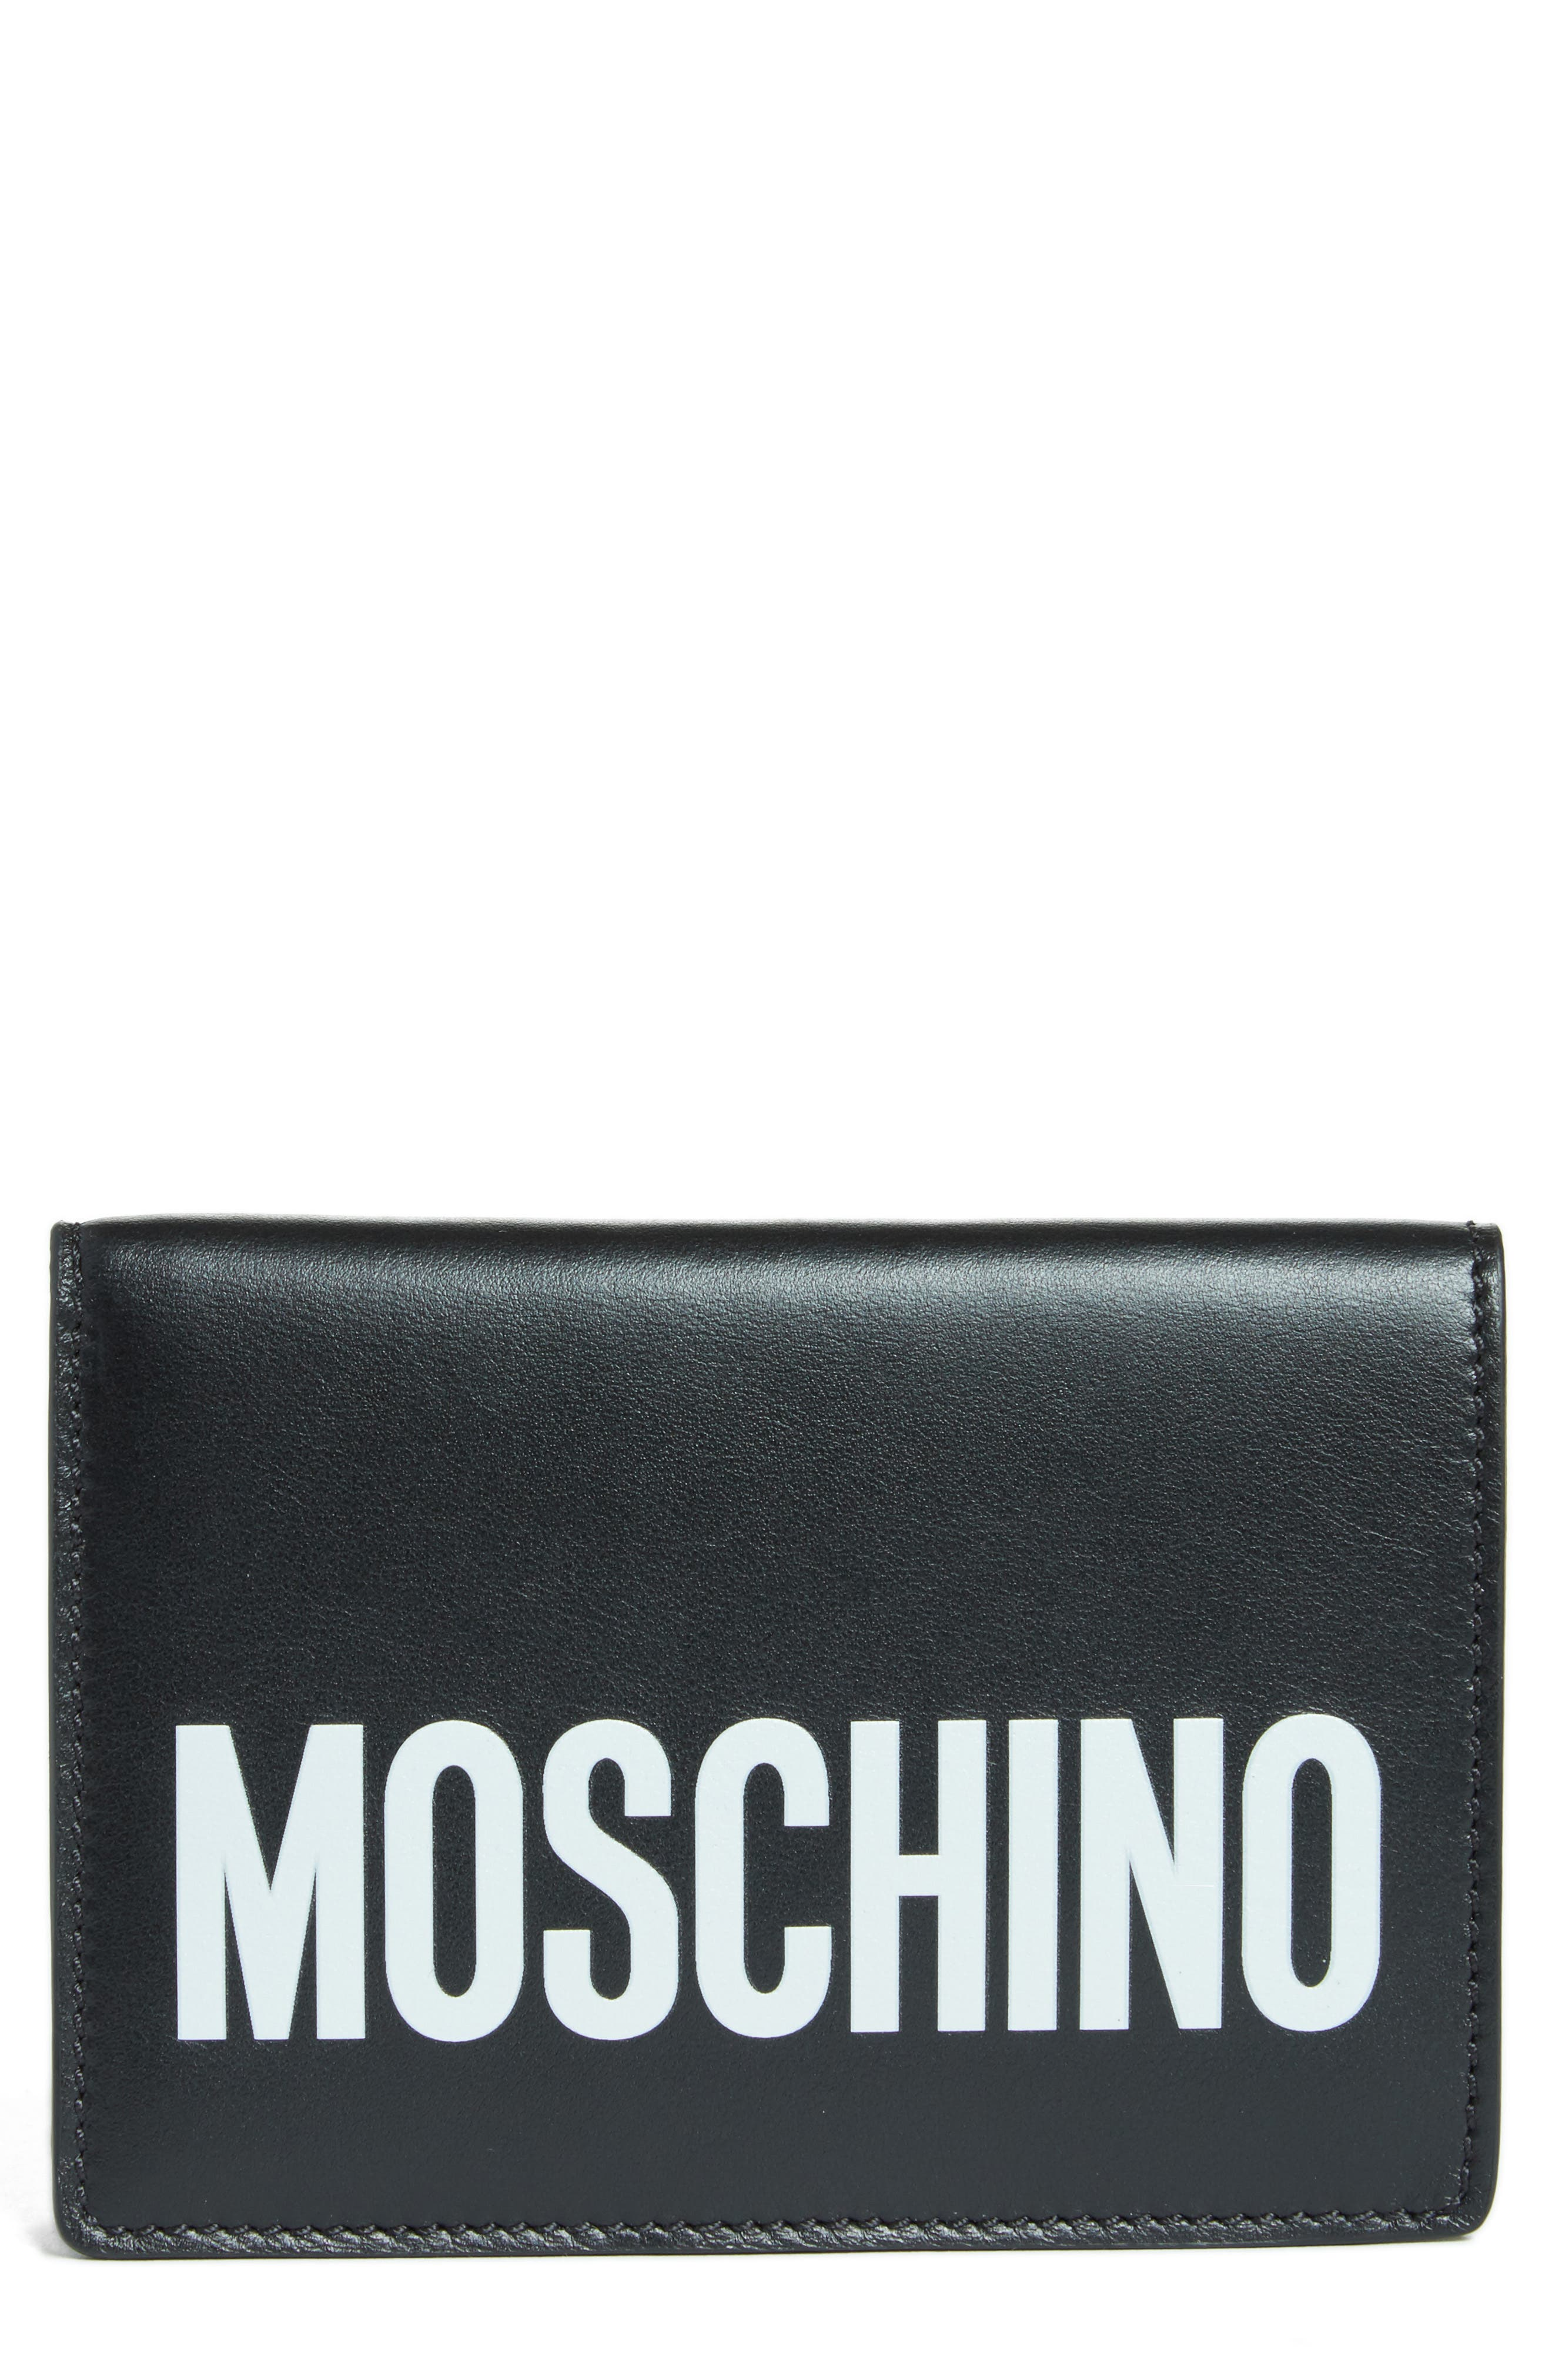 Moschino Logo Leather Passport Holder